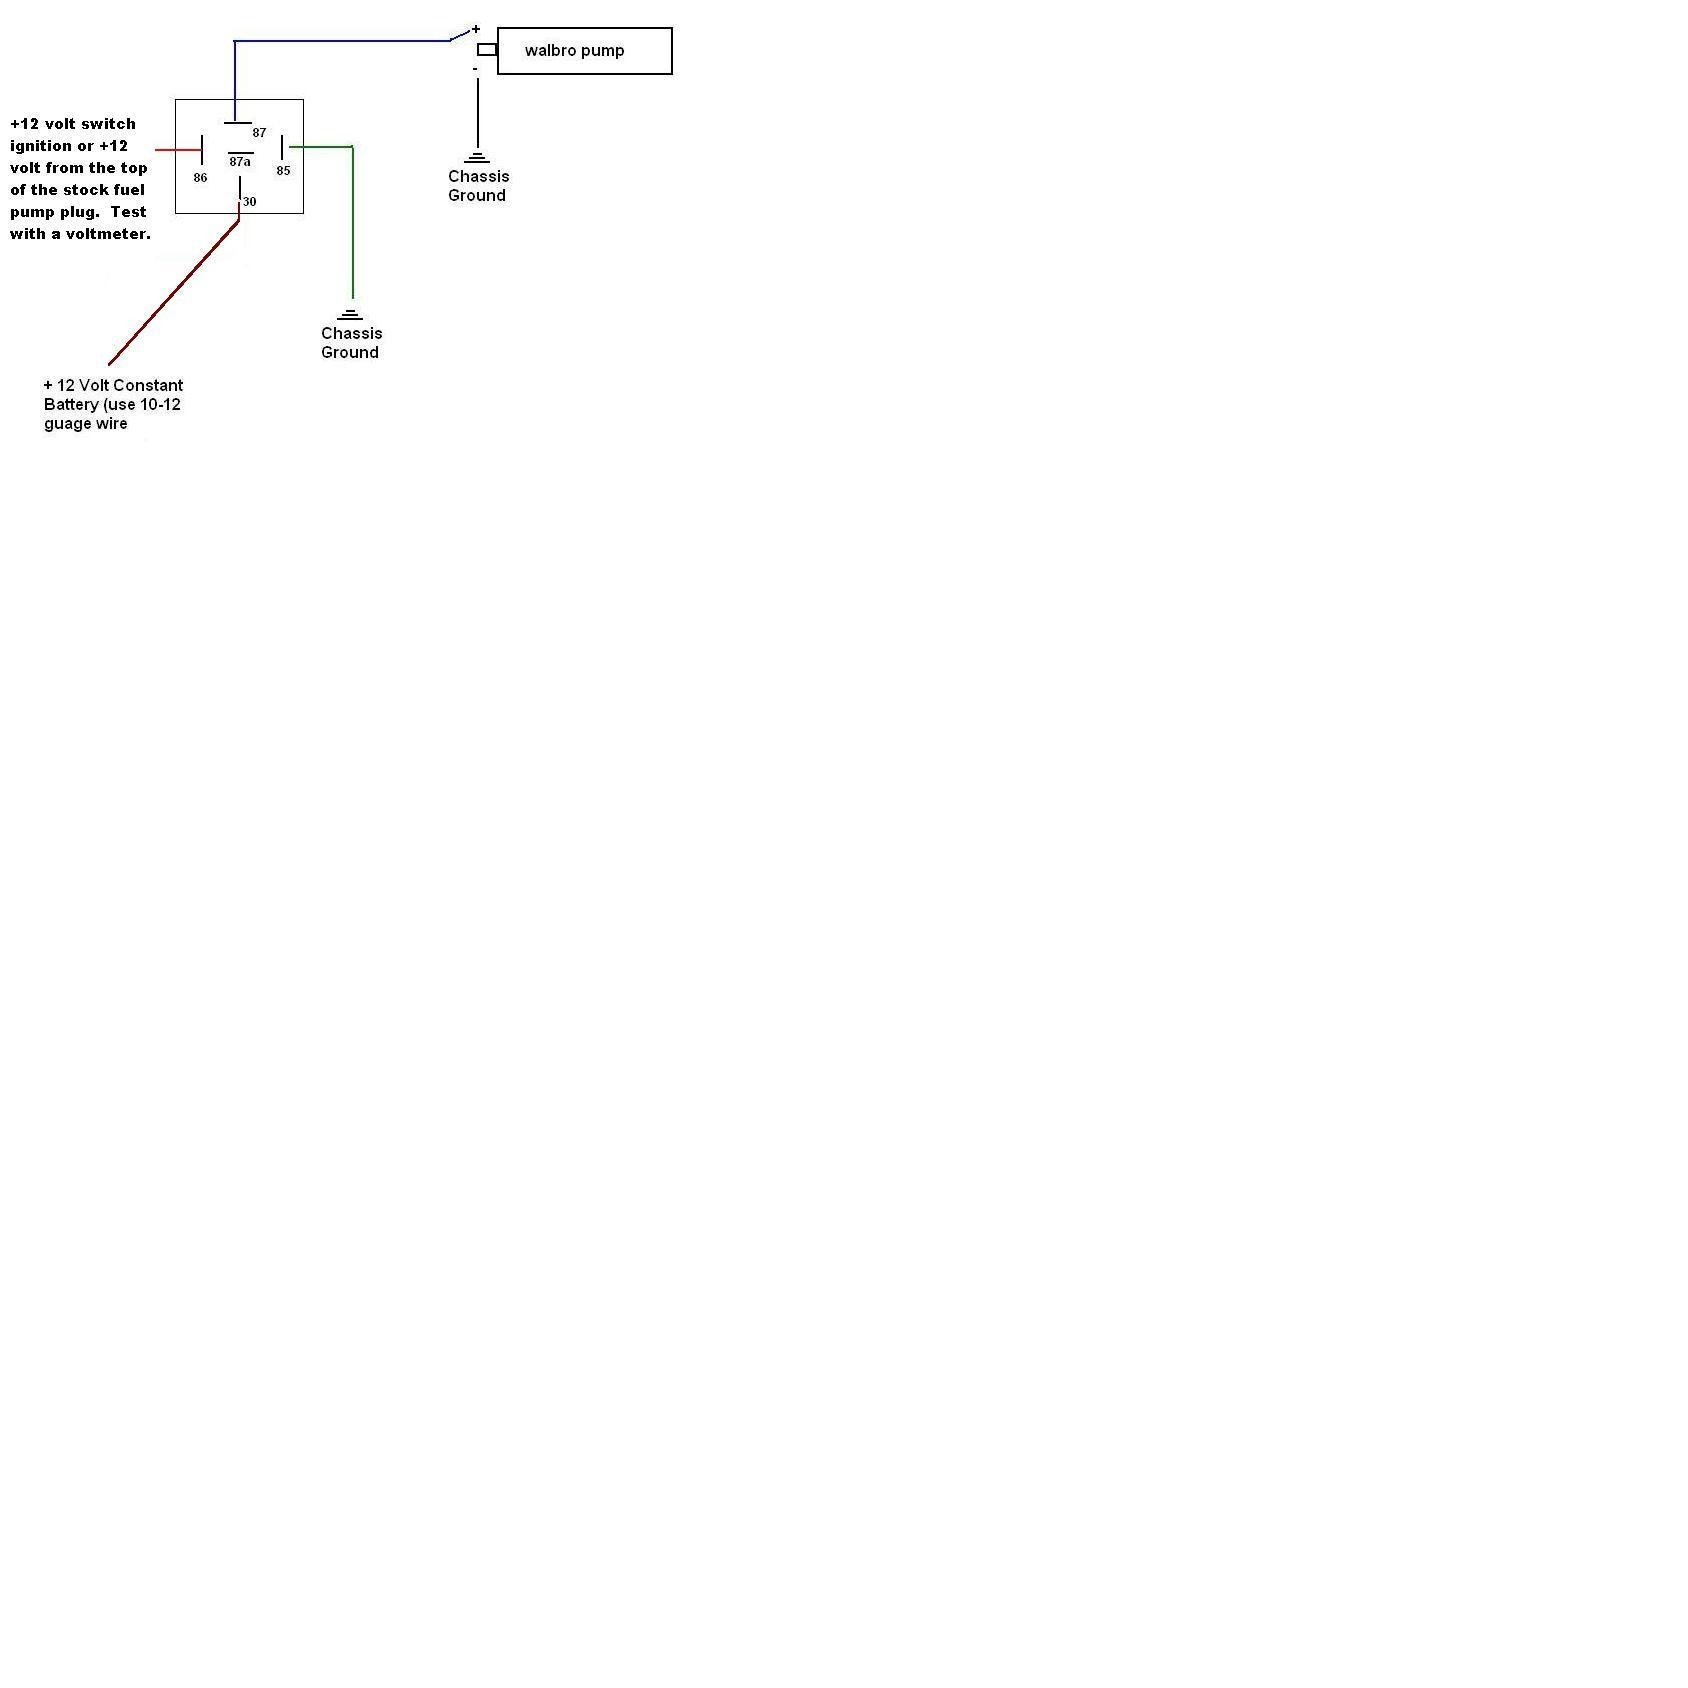 Magnafuel Fuel Relay Wiring Diagram on